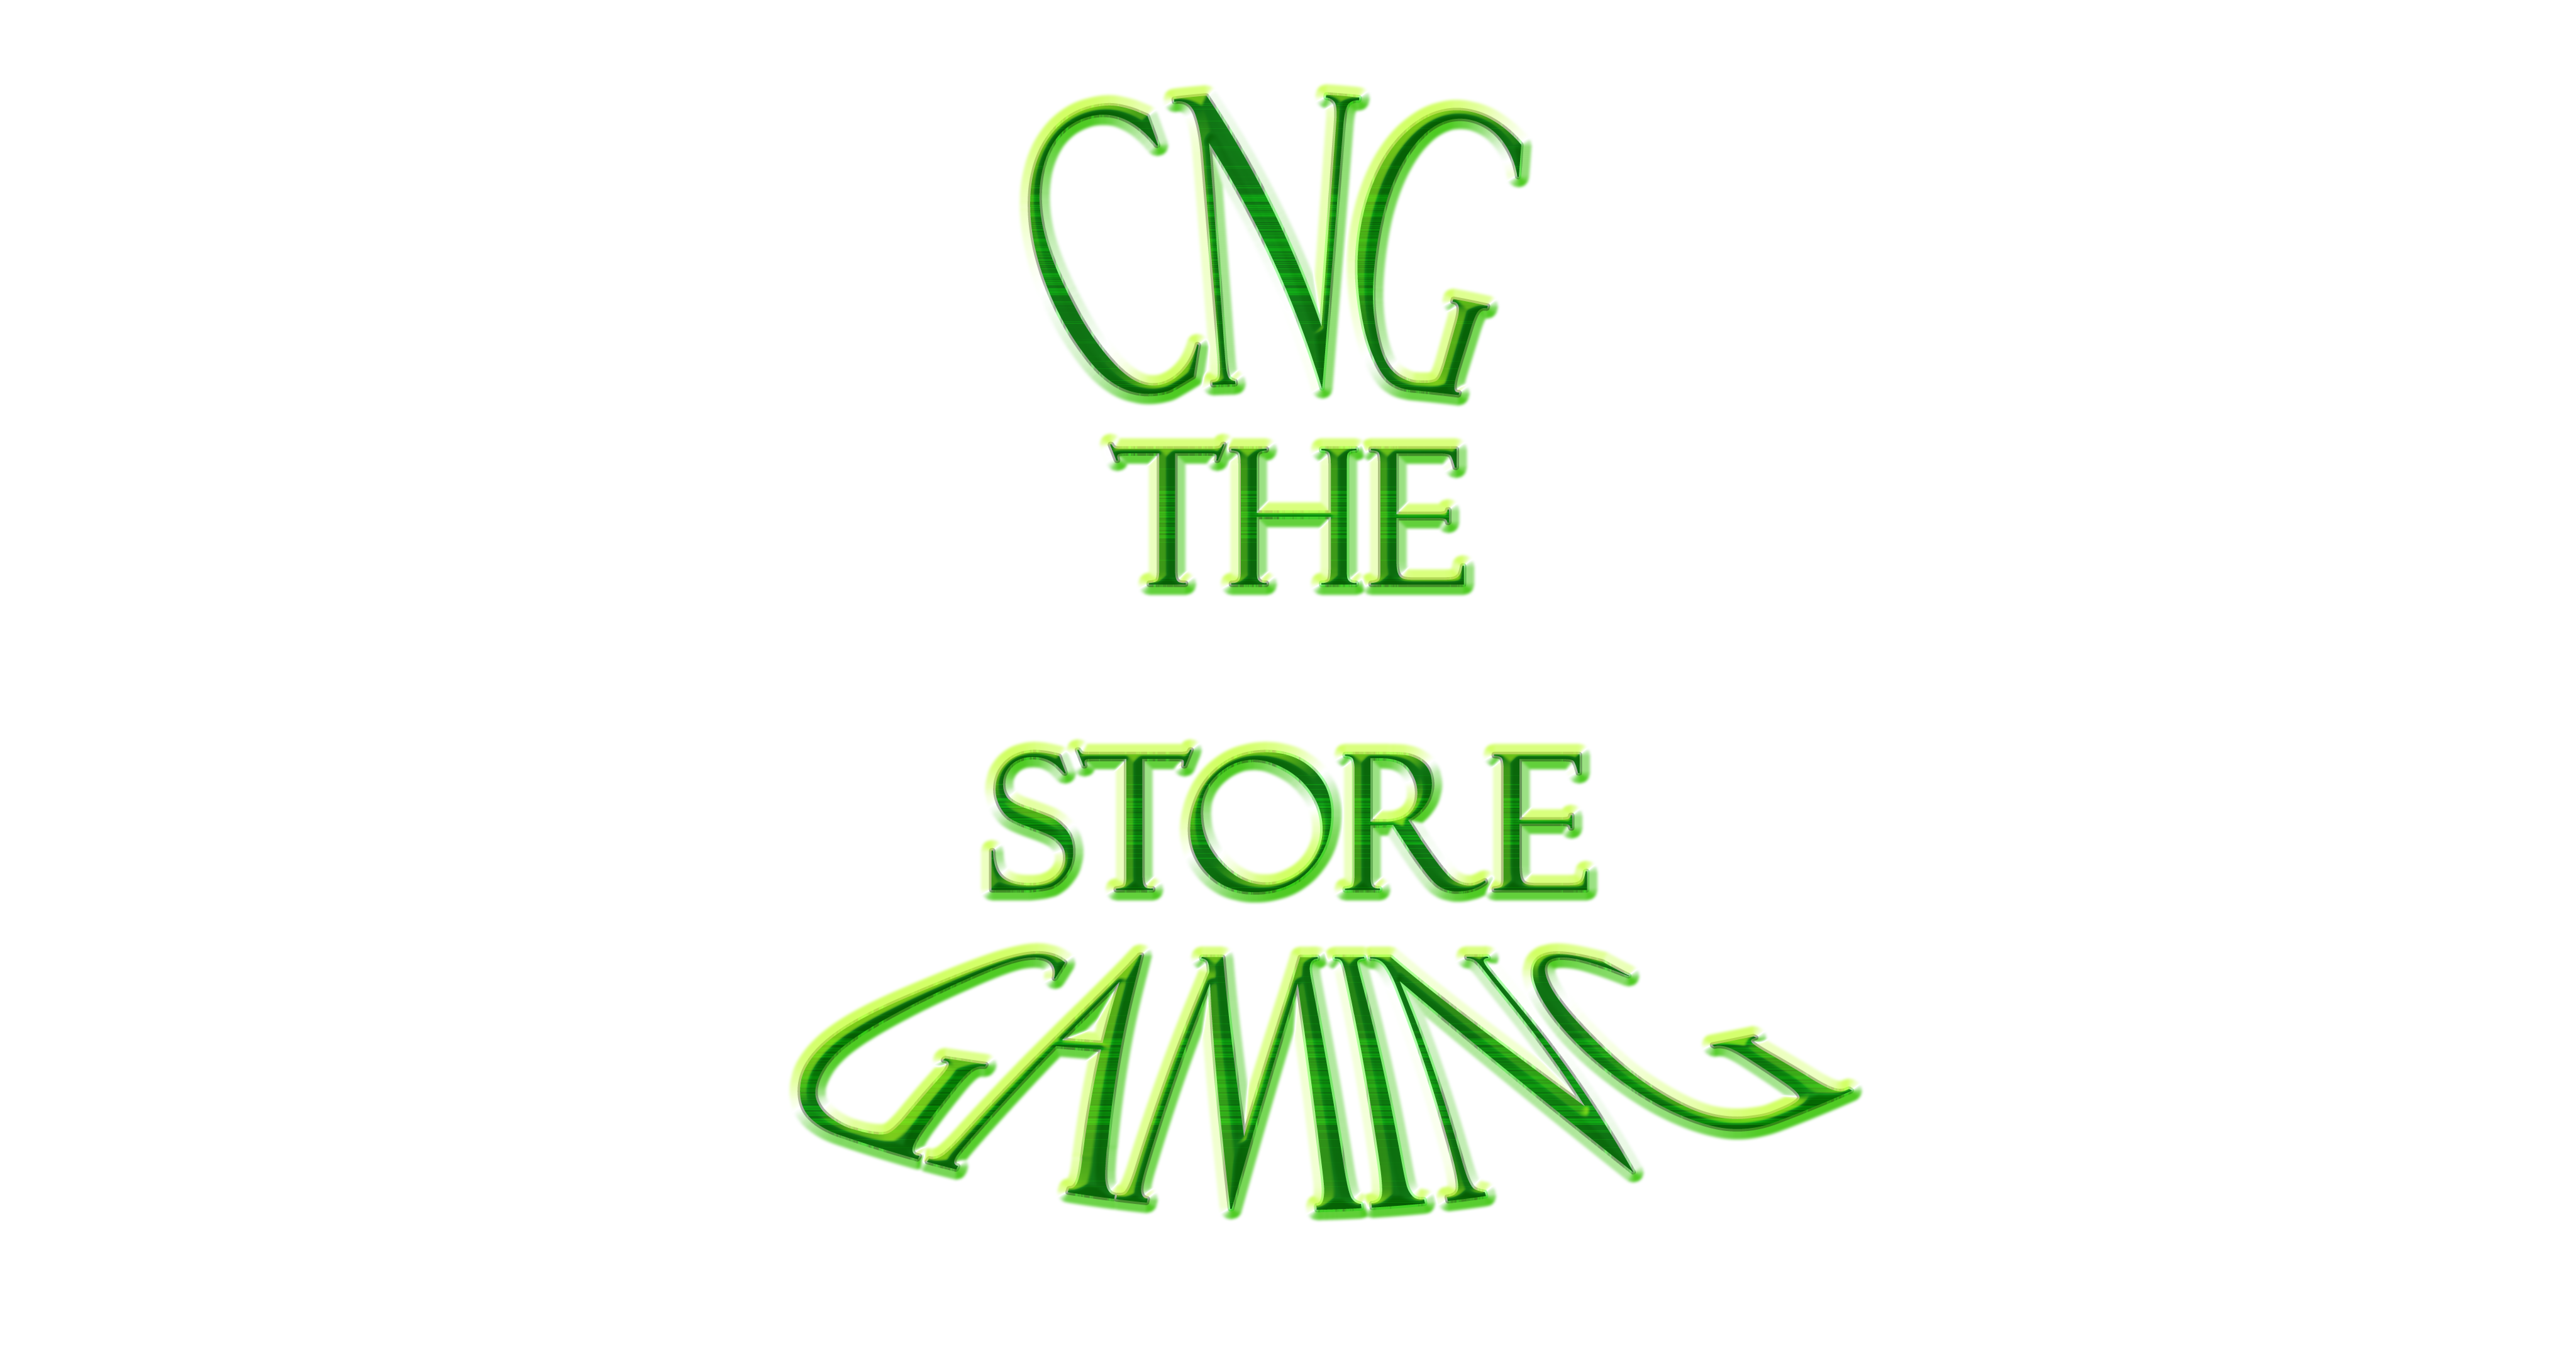 CNG Gaming Center